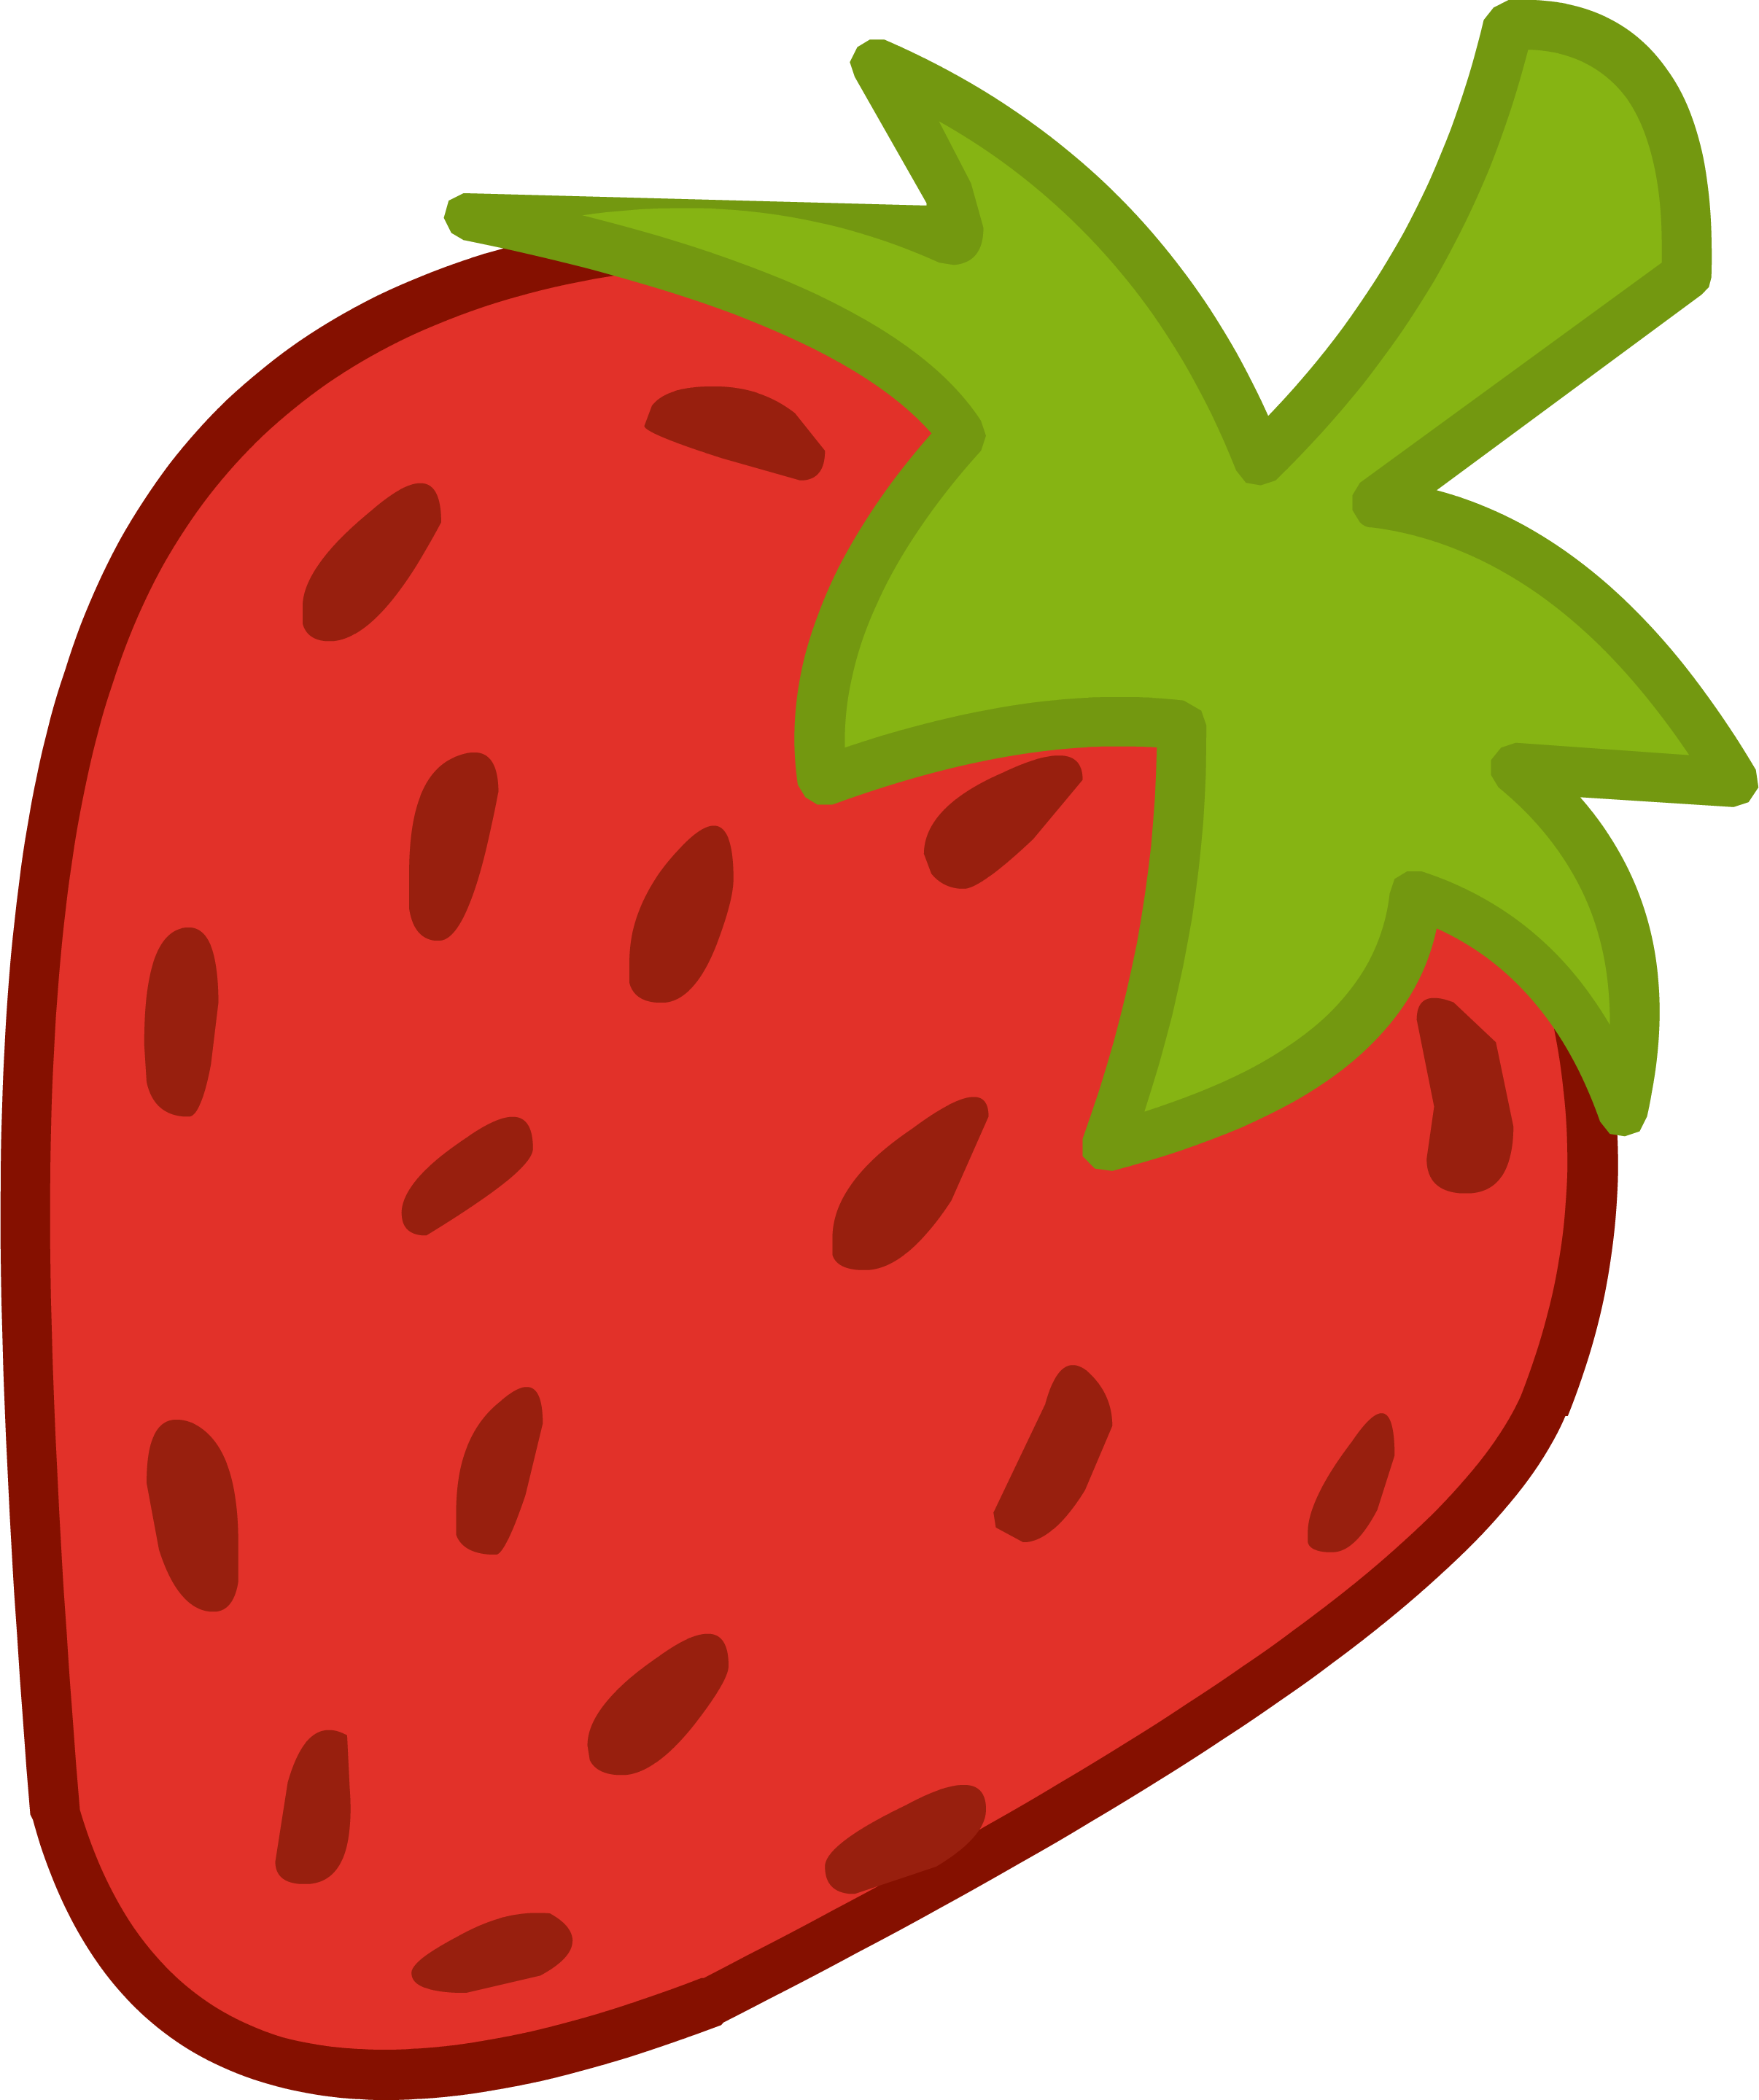 Strawberry clipart #7, Download drawings